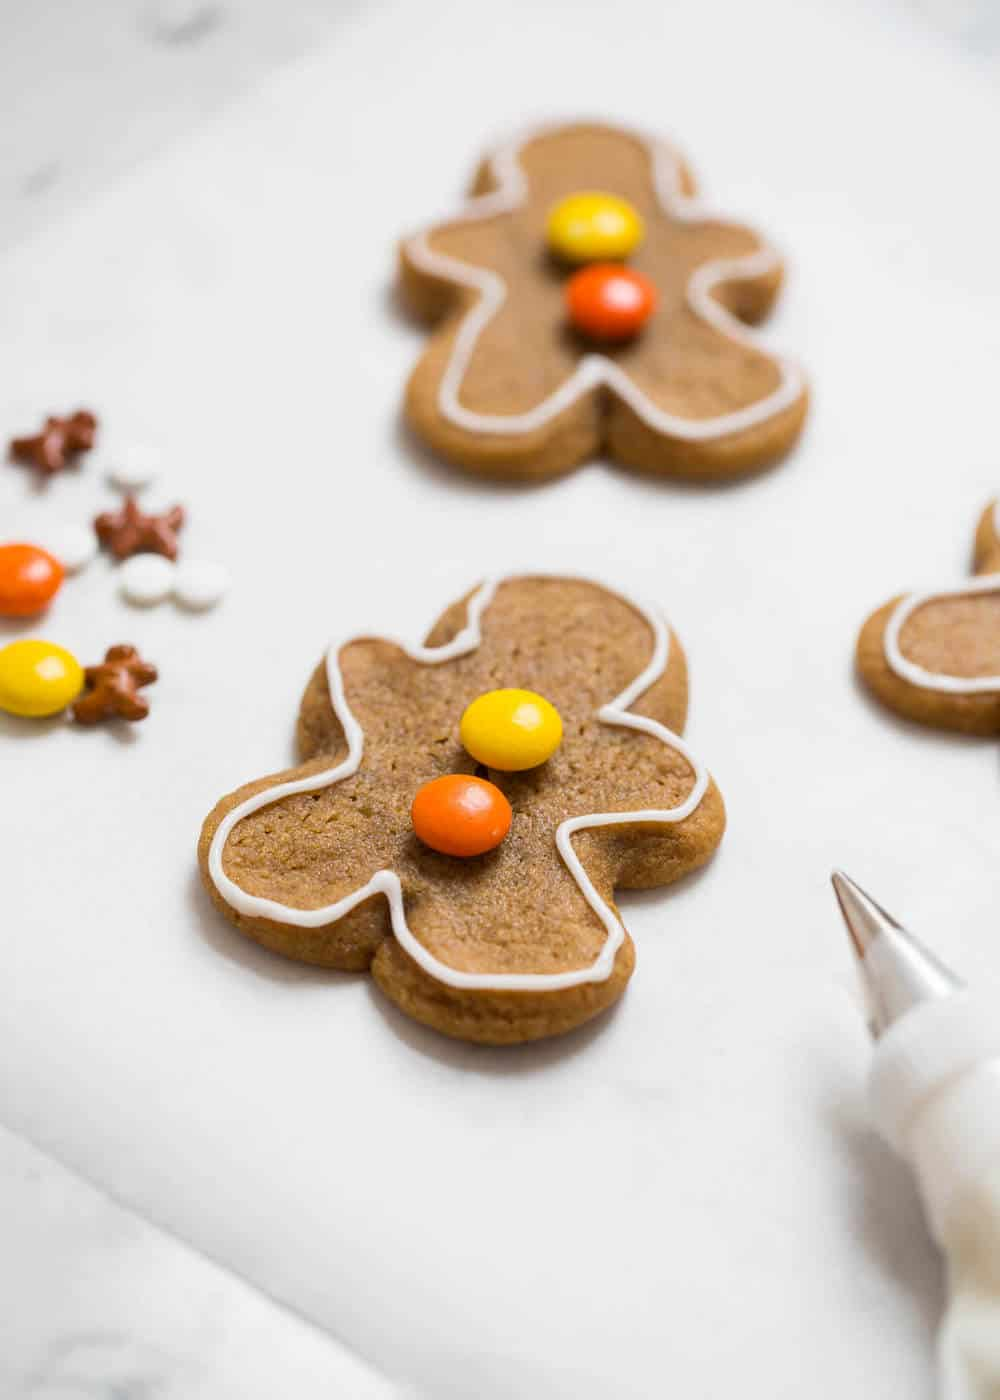 Adorable homemade gingerbread men with Reese's pieces for the buttons